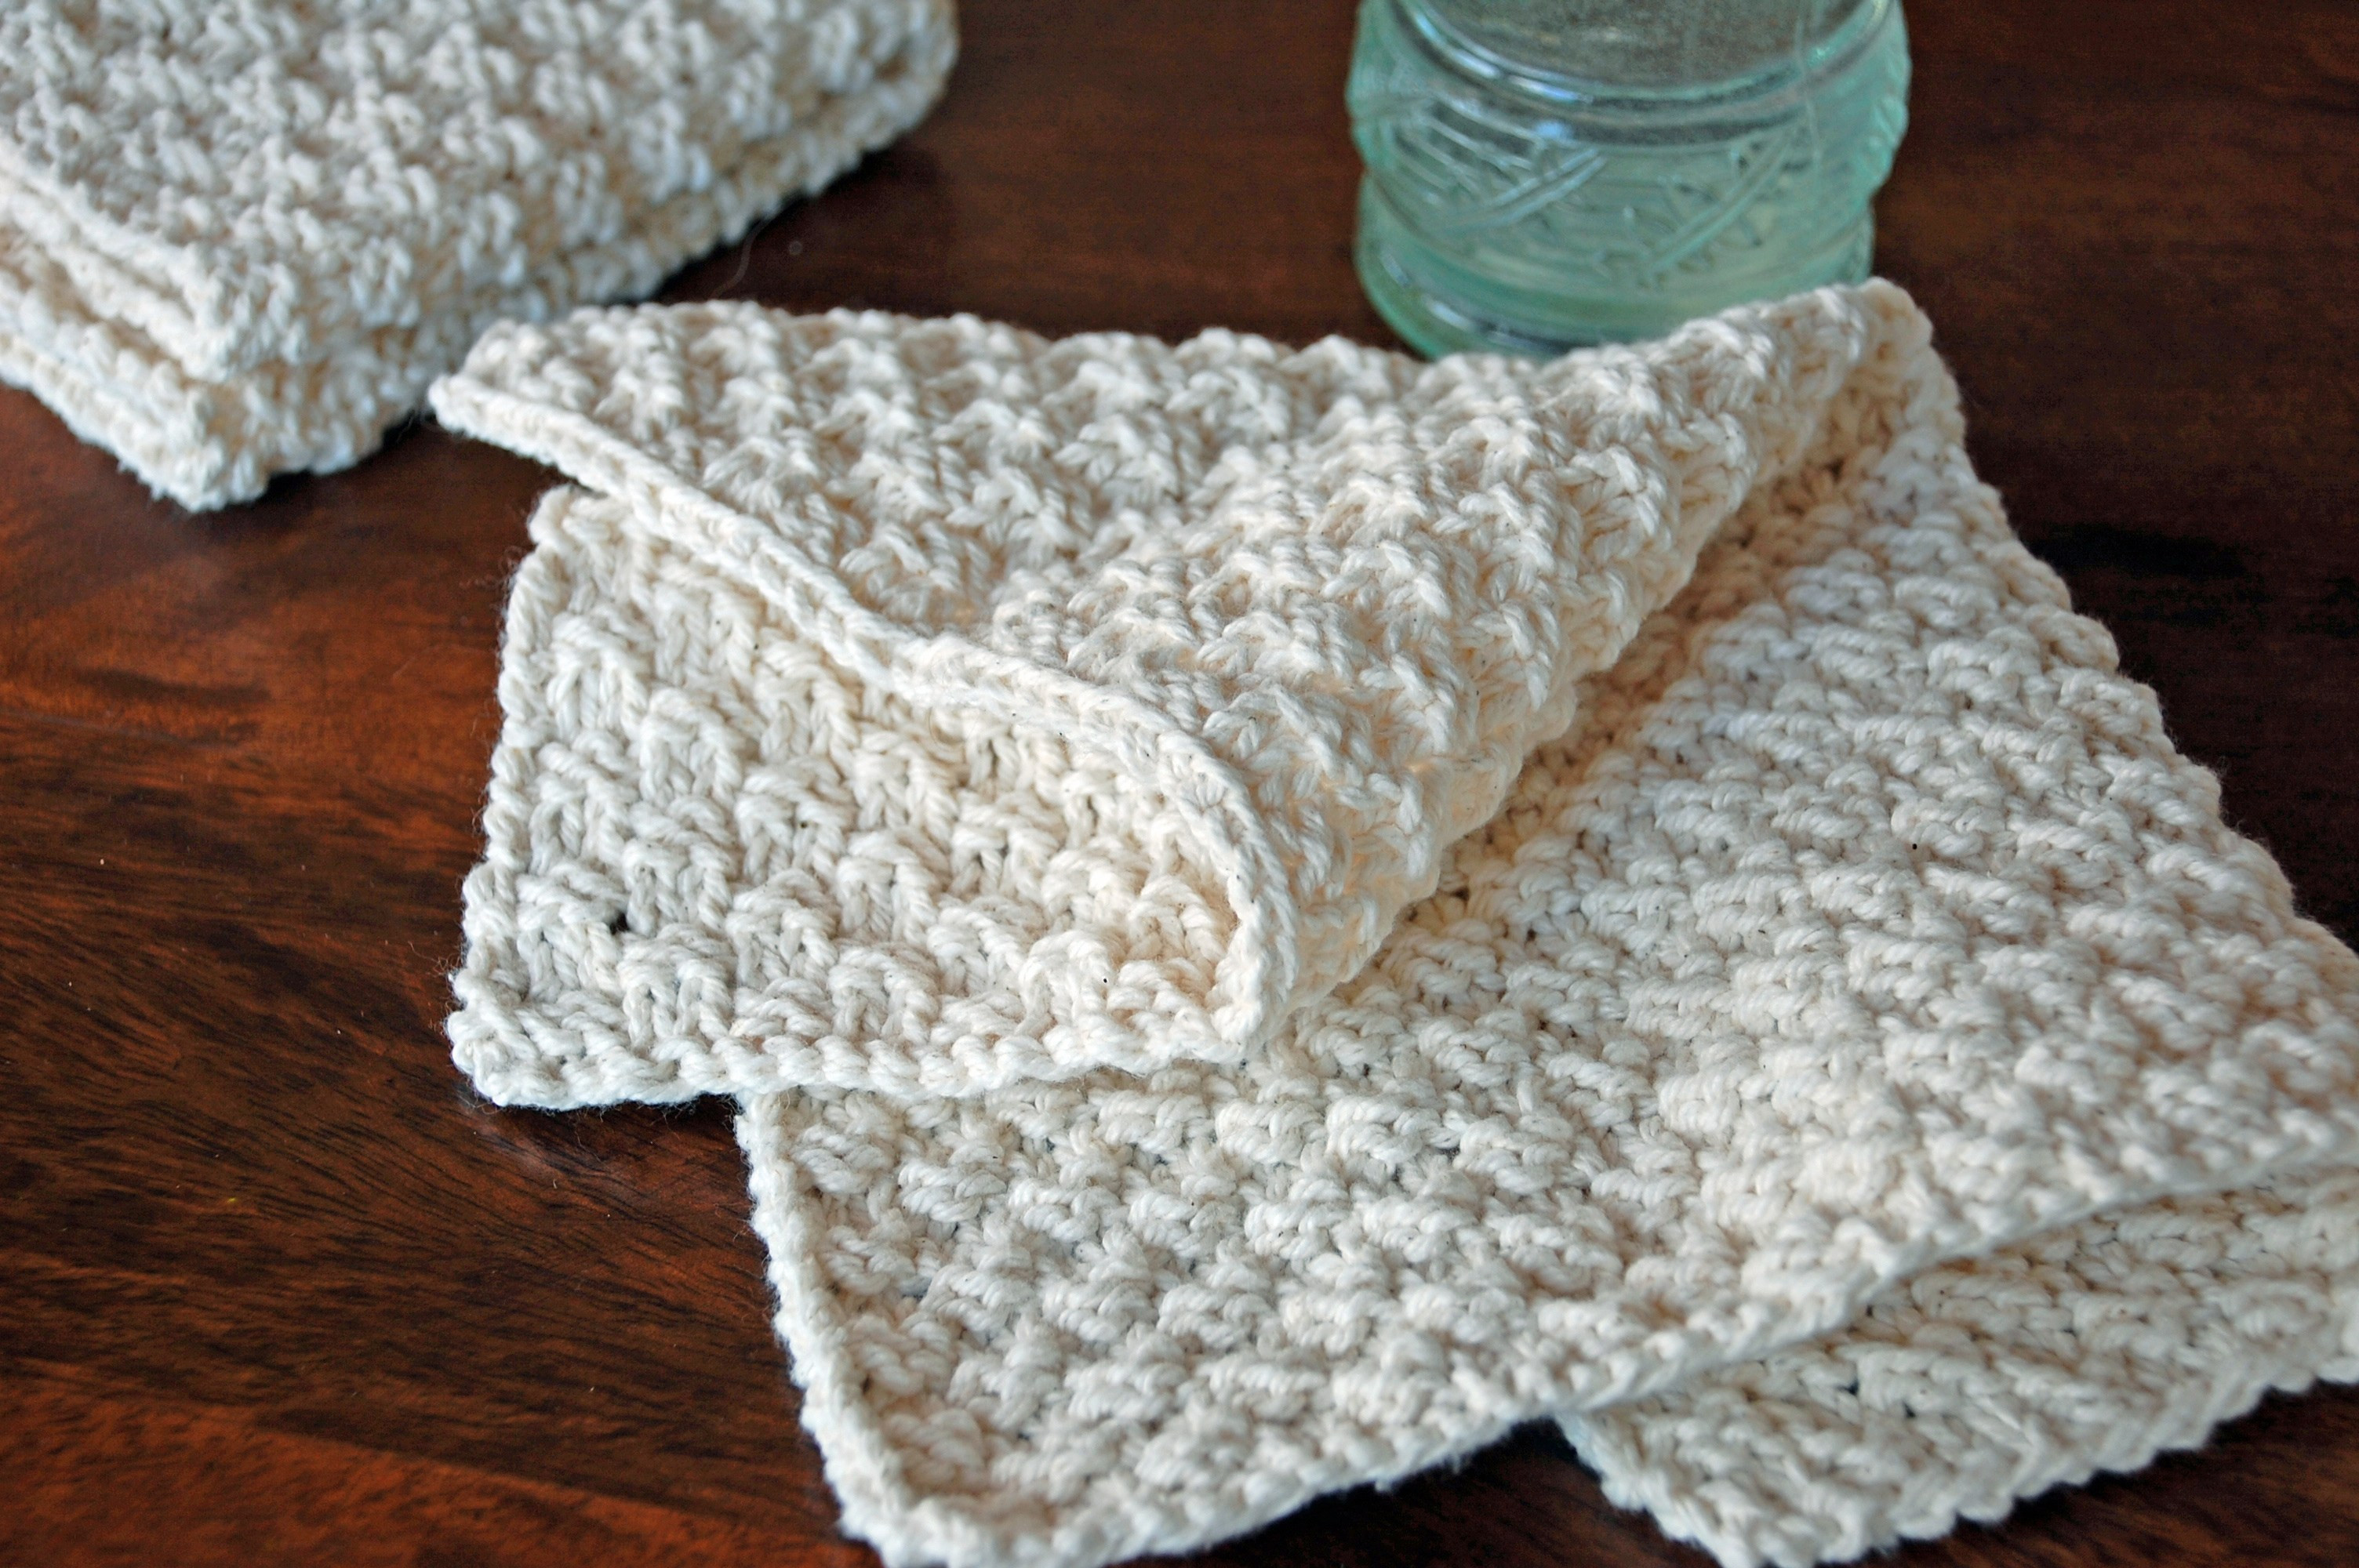 Instruction to knit cotton washcloth and add crochet edge